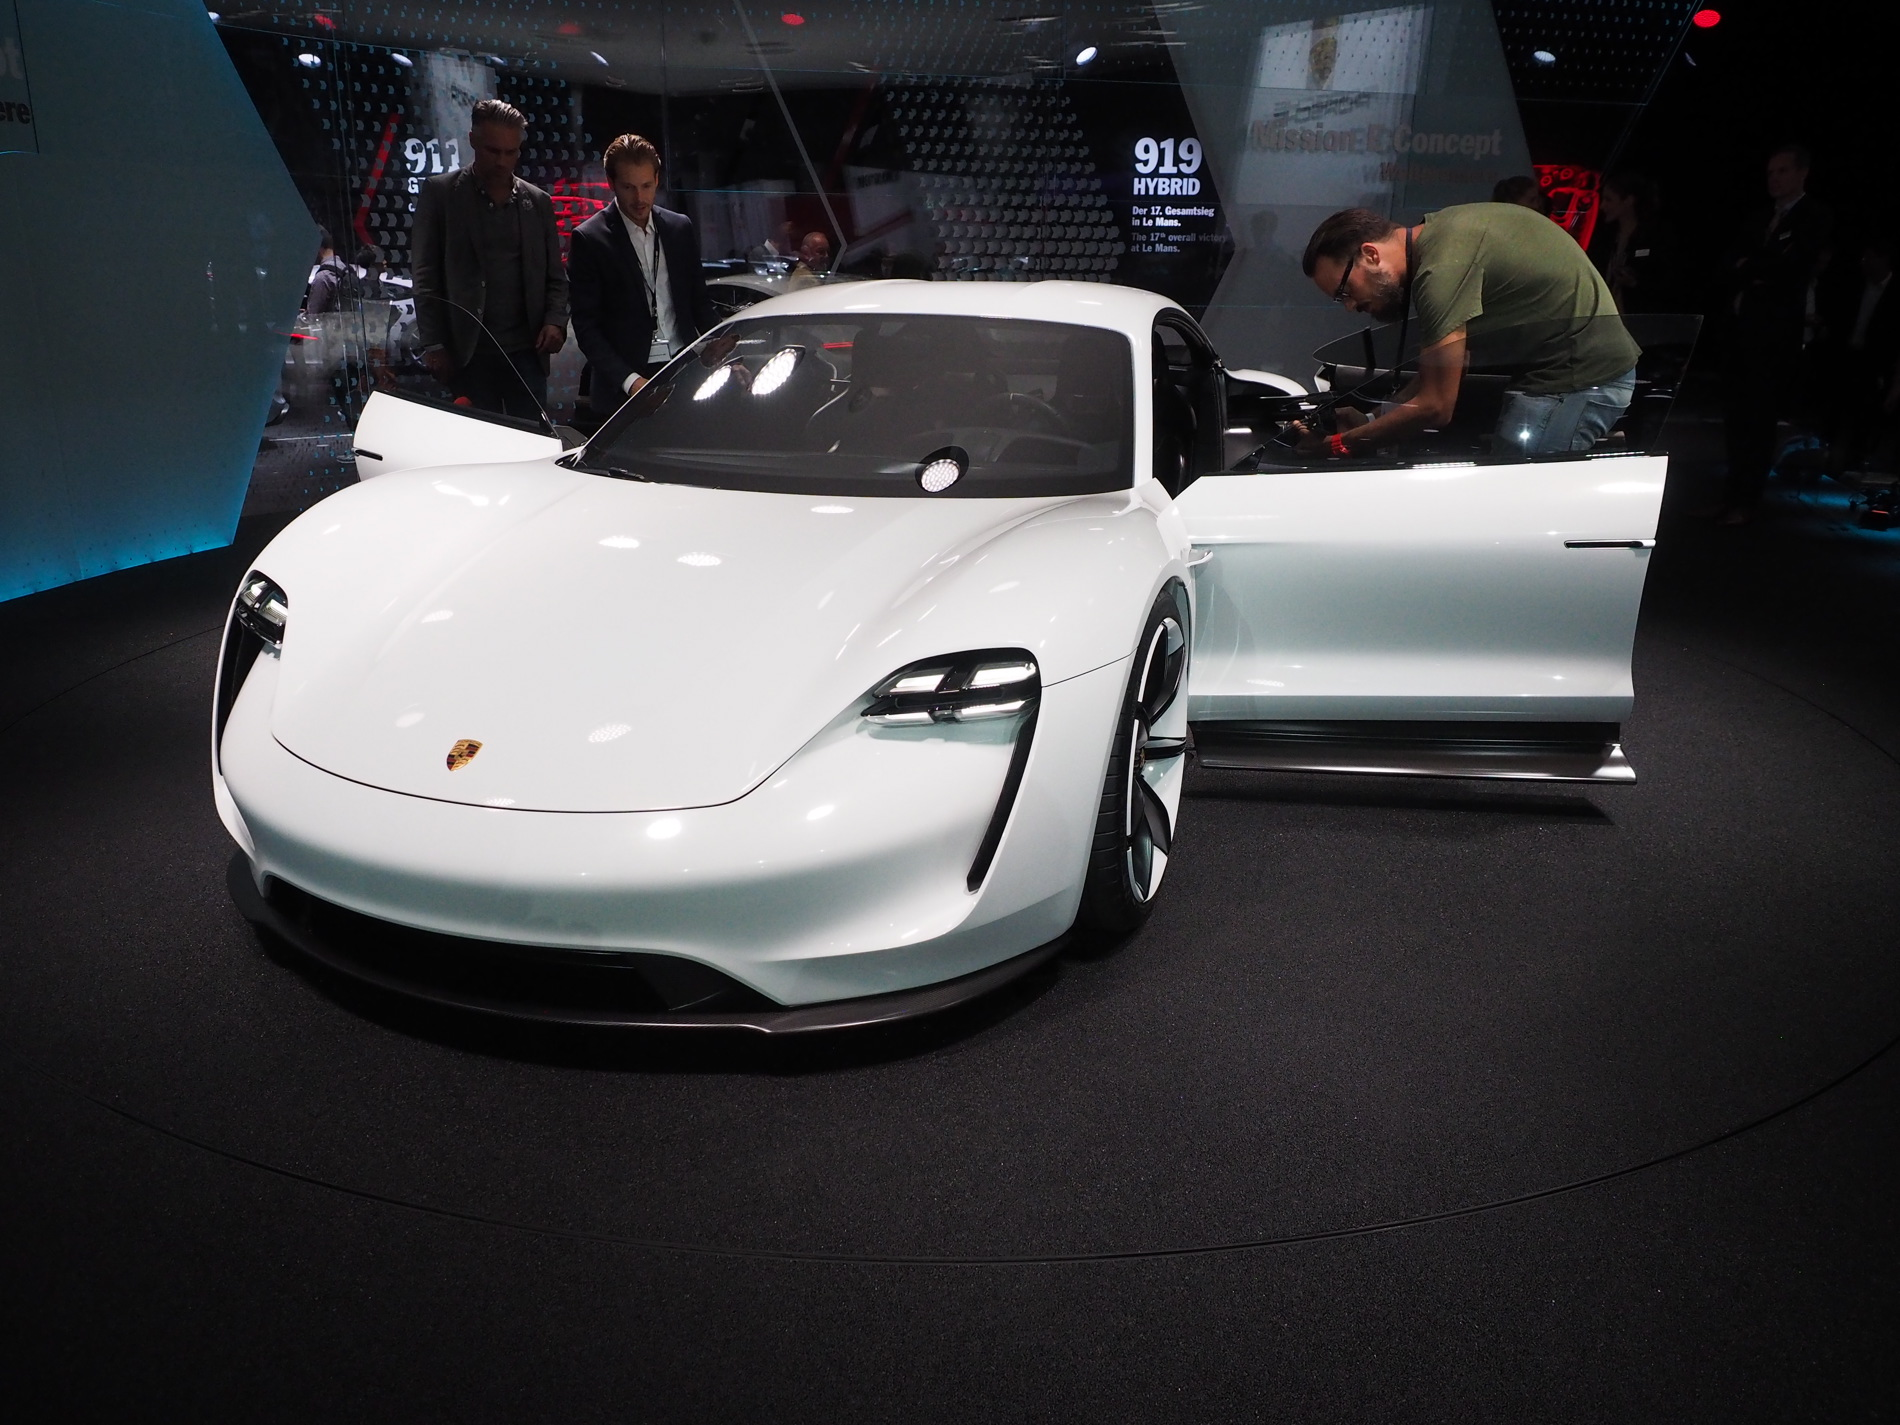 VIDEO: The Porsche Taycan looks mightily impressive